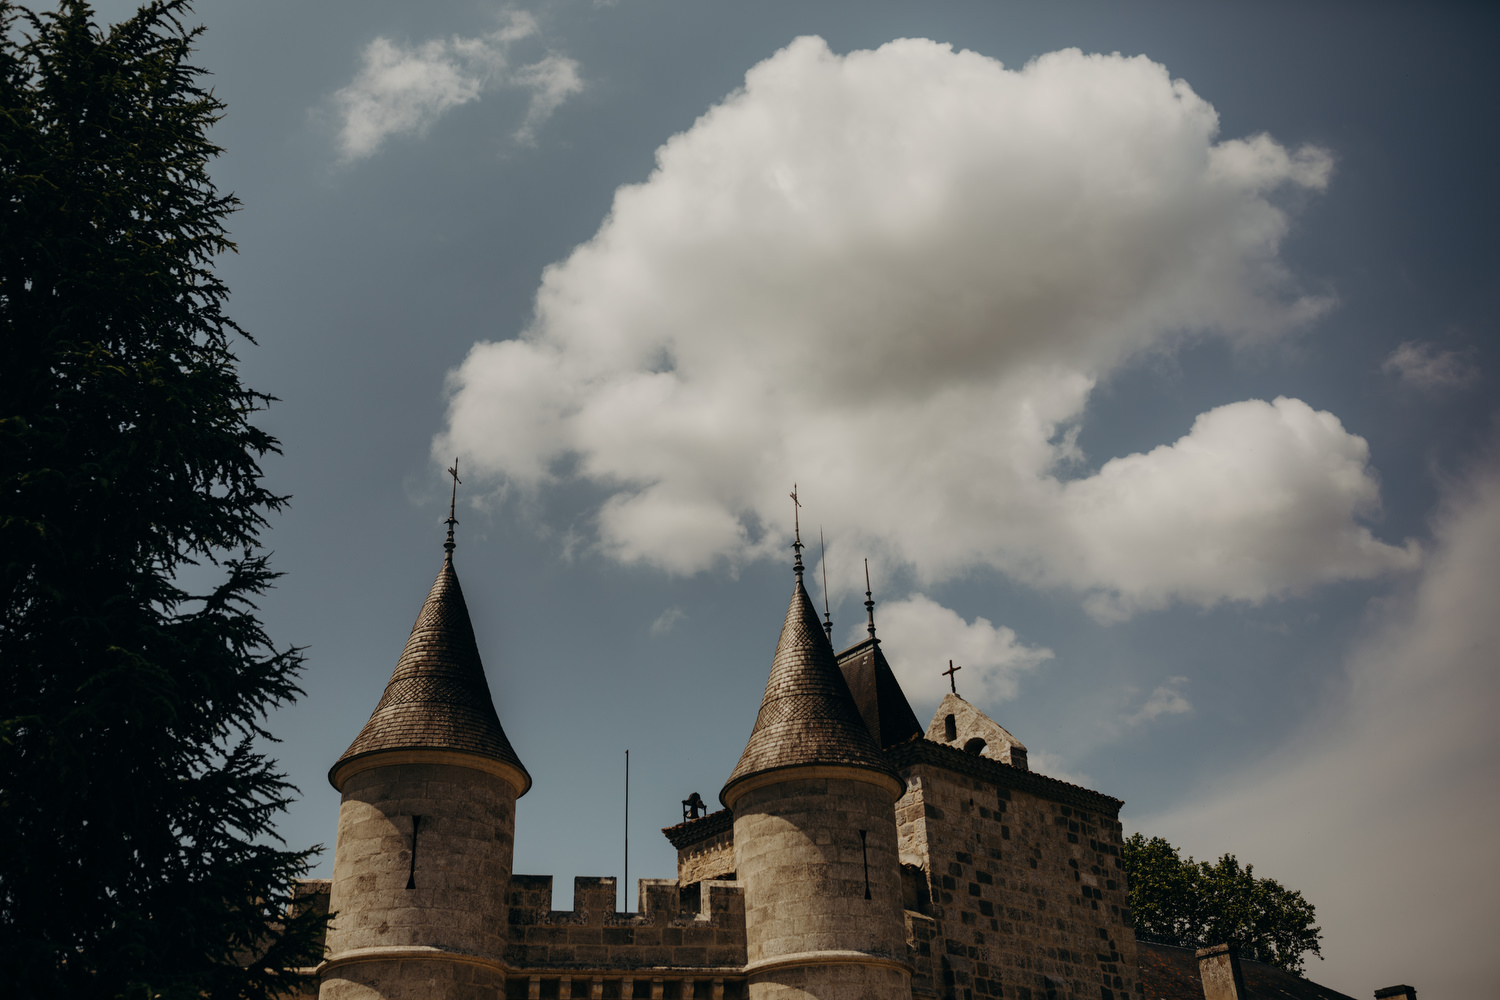 Turrets of chateau de lisse with clouds in background